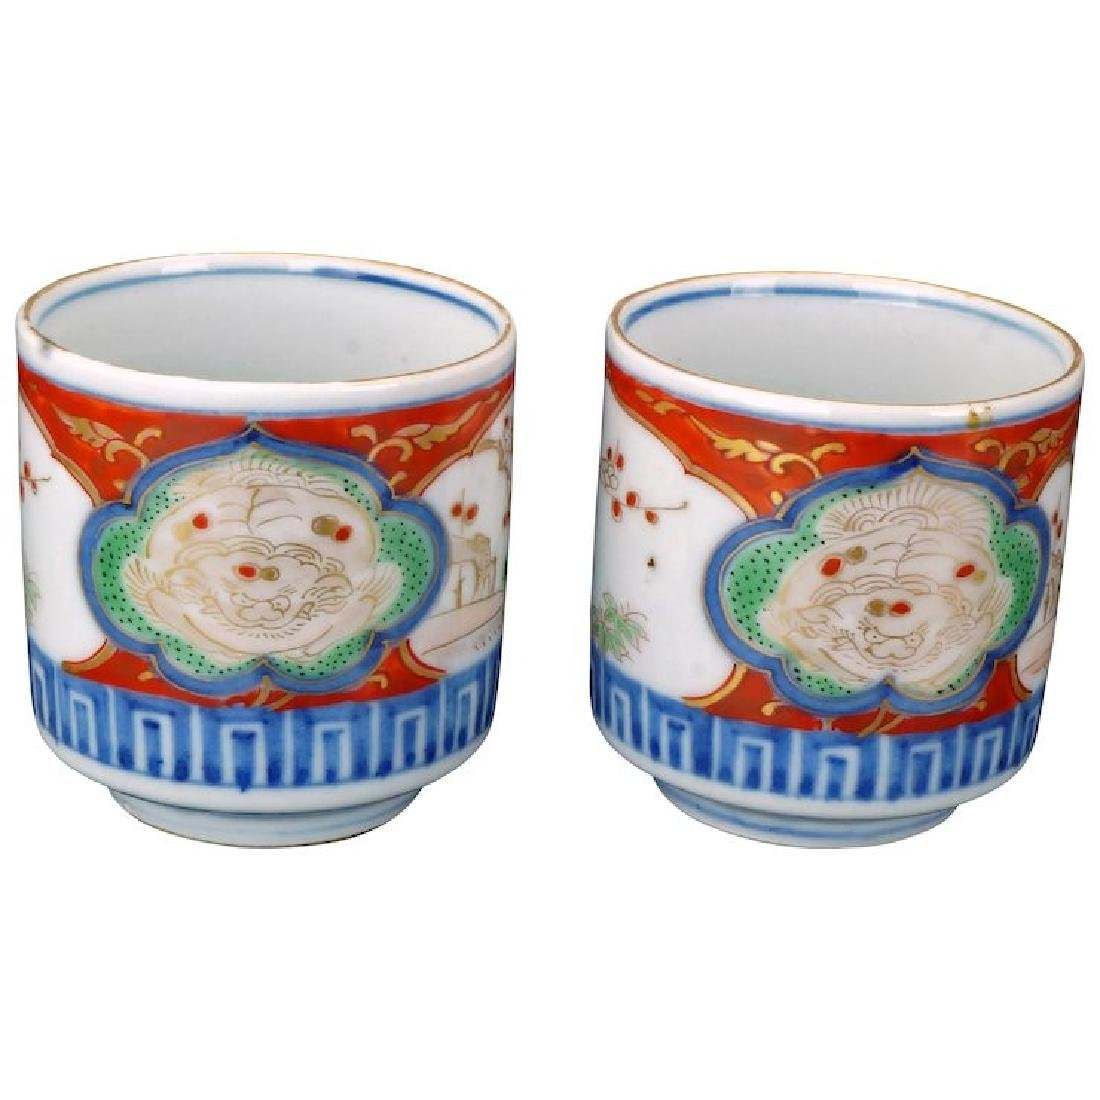 Matched pair of Japanese porcelain colored Imari